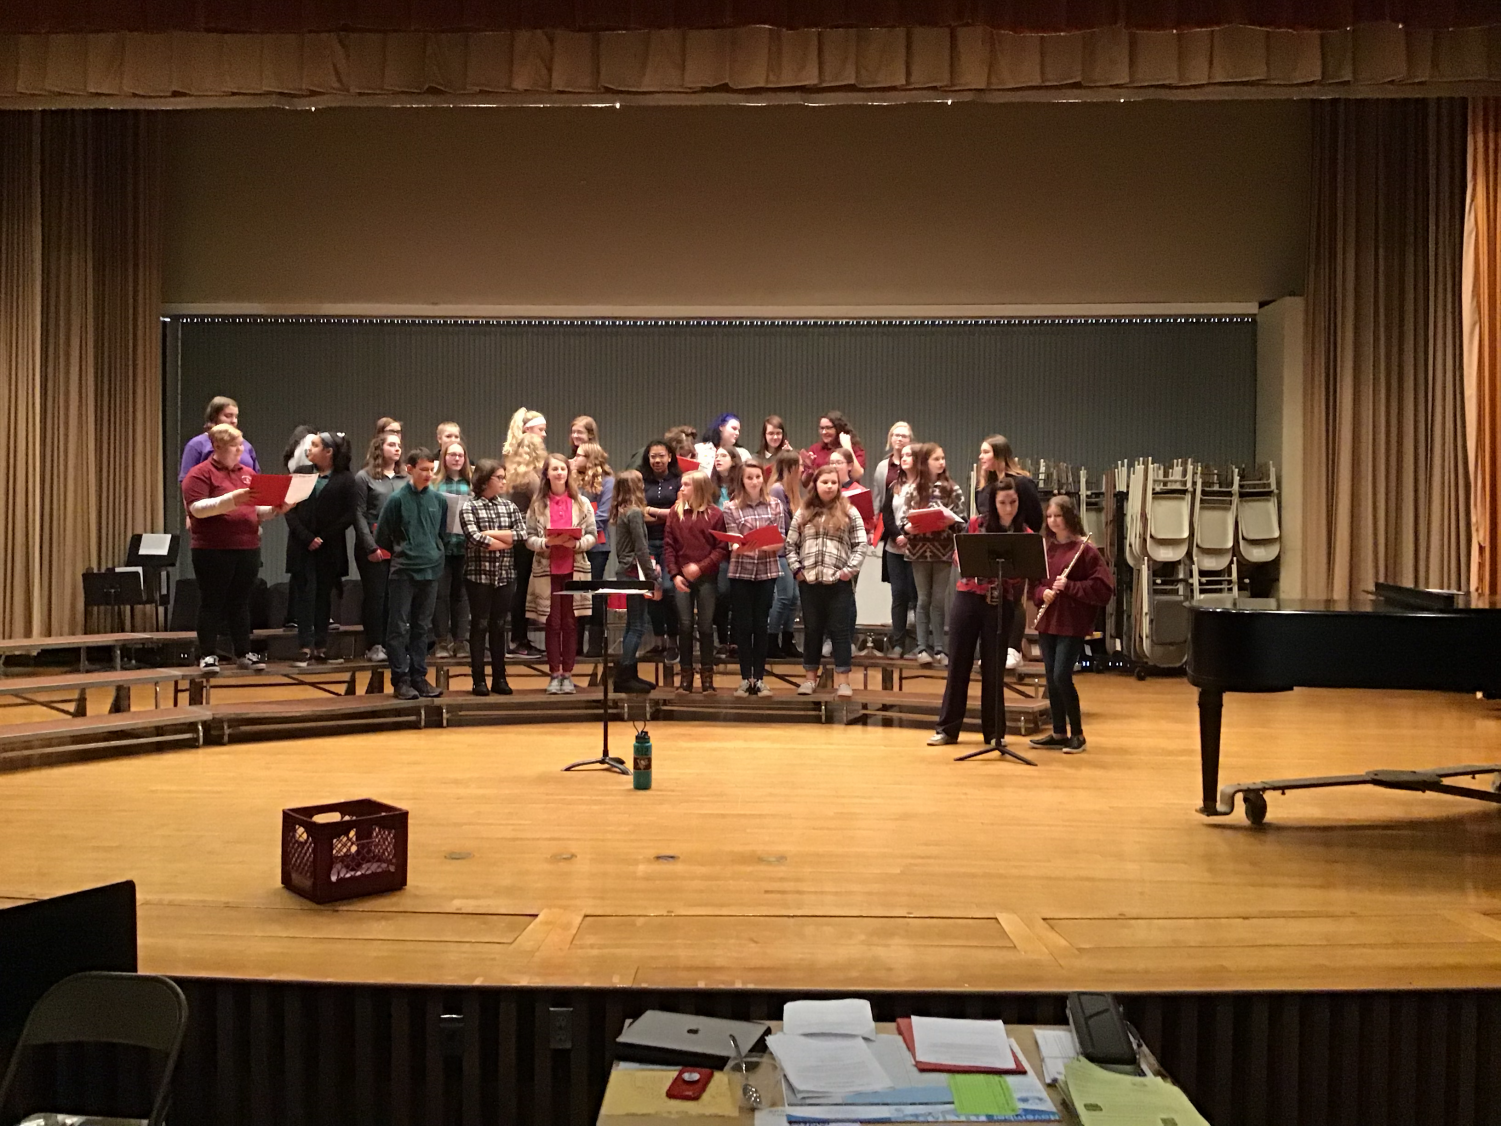 REHEARSE - The Tide Tones, an auditioned group of seventh and eighth grade vocalists, rehearse for their annual holiday concert. The concert was held on Sunday, December 8.